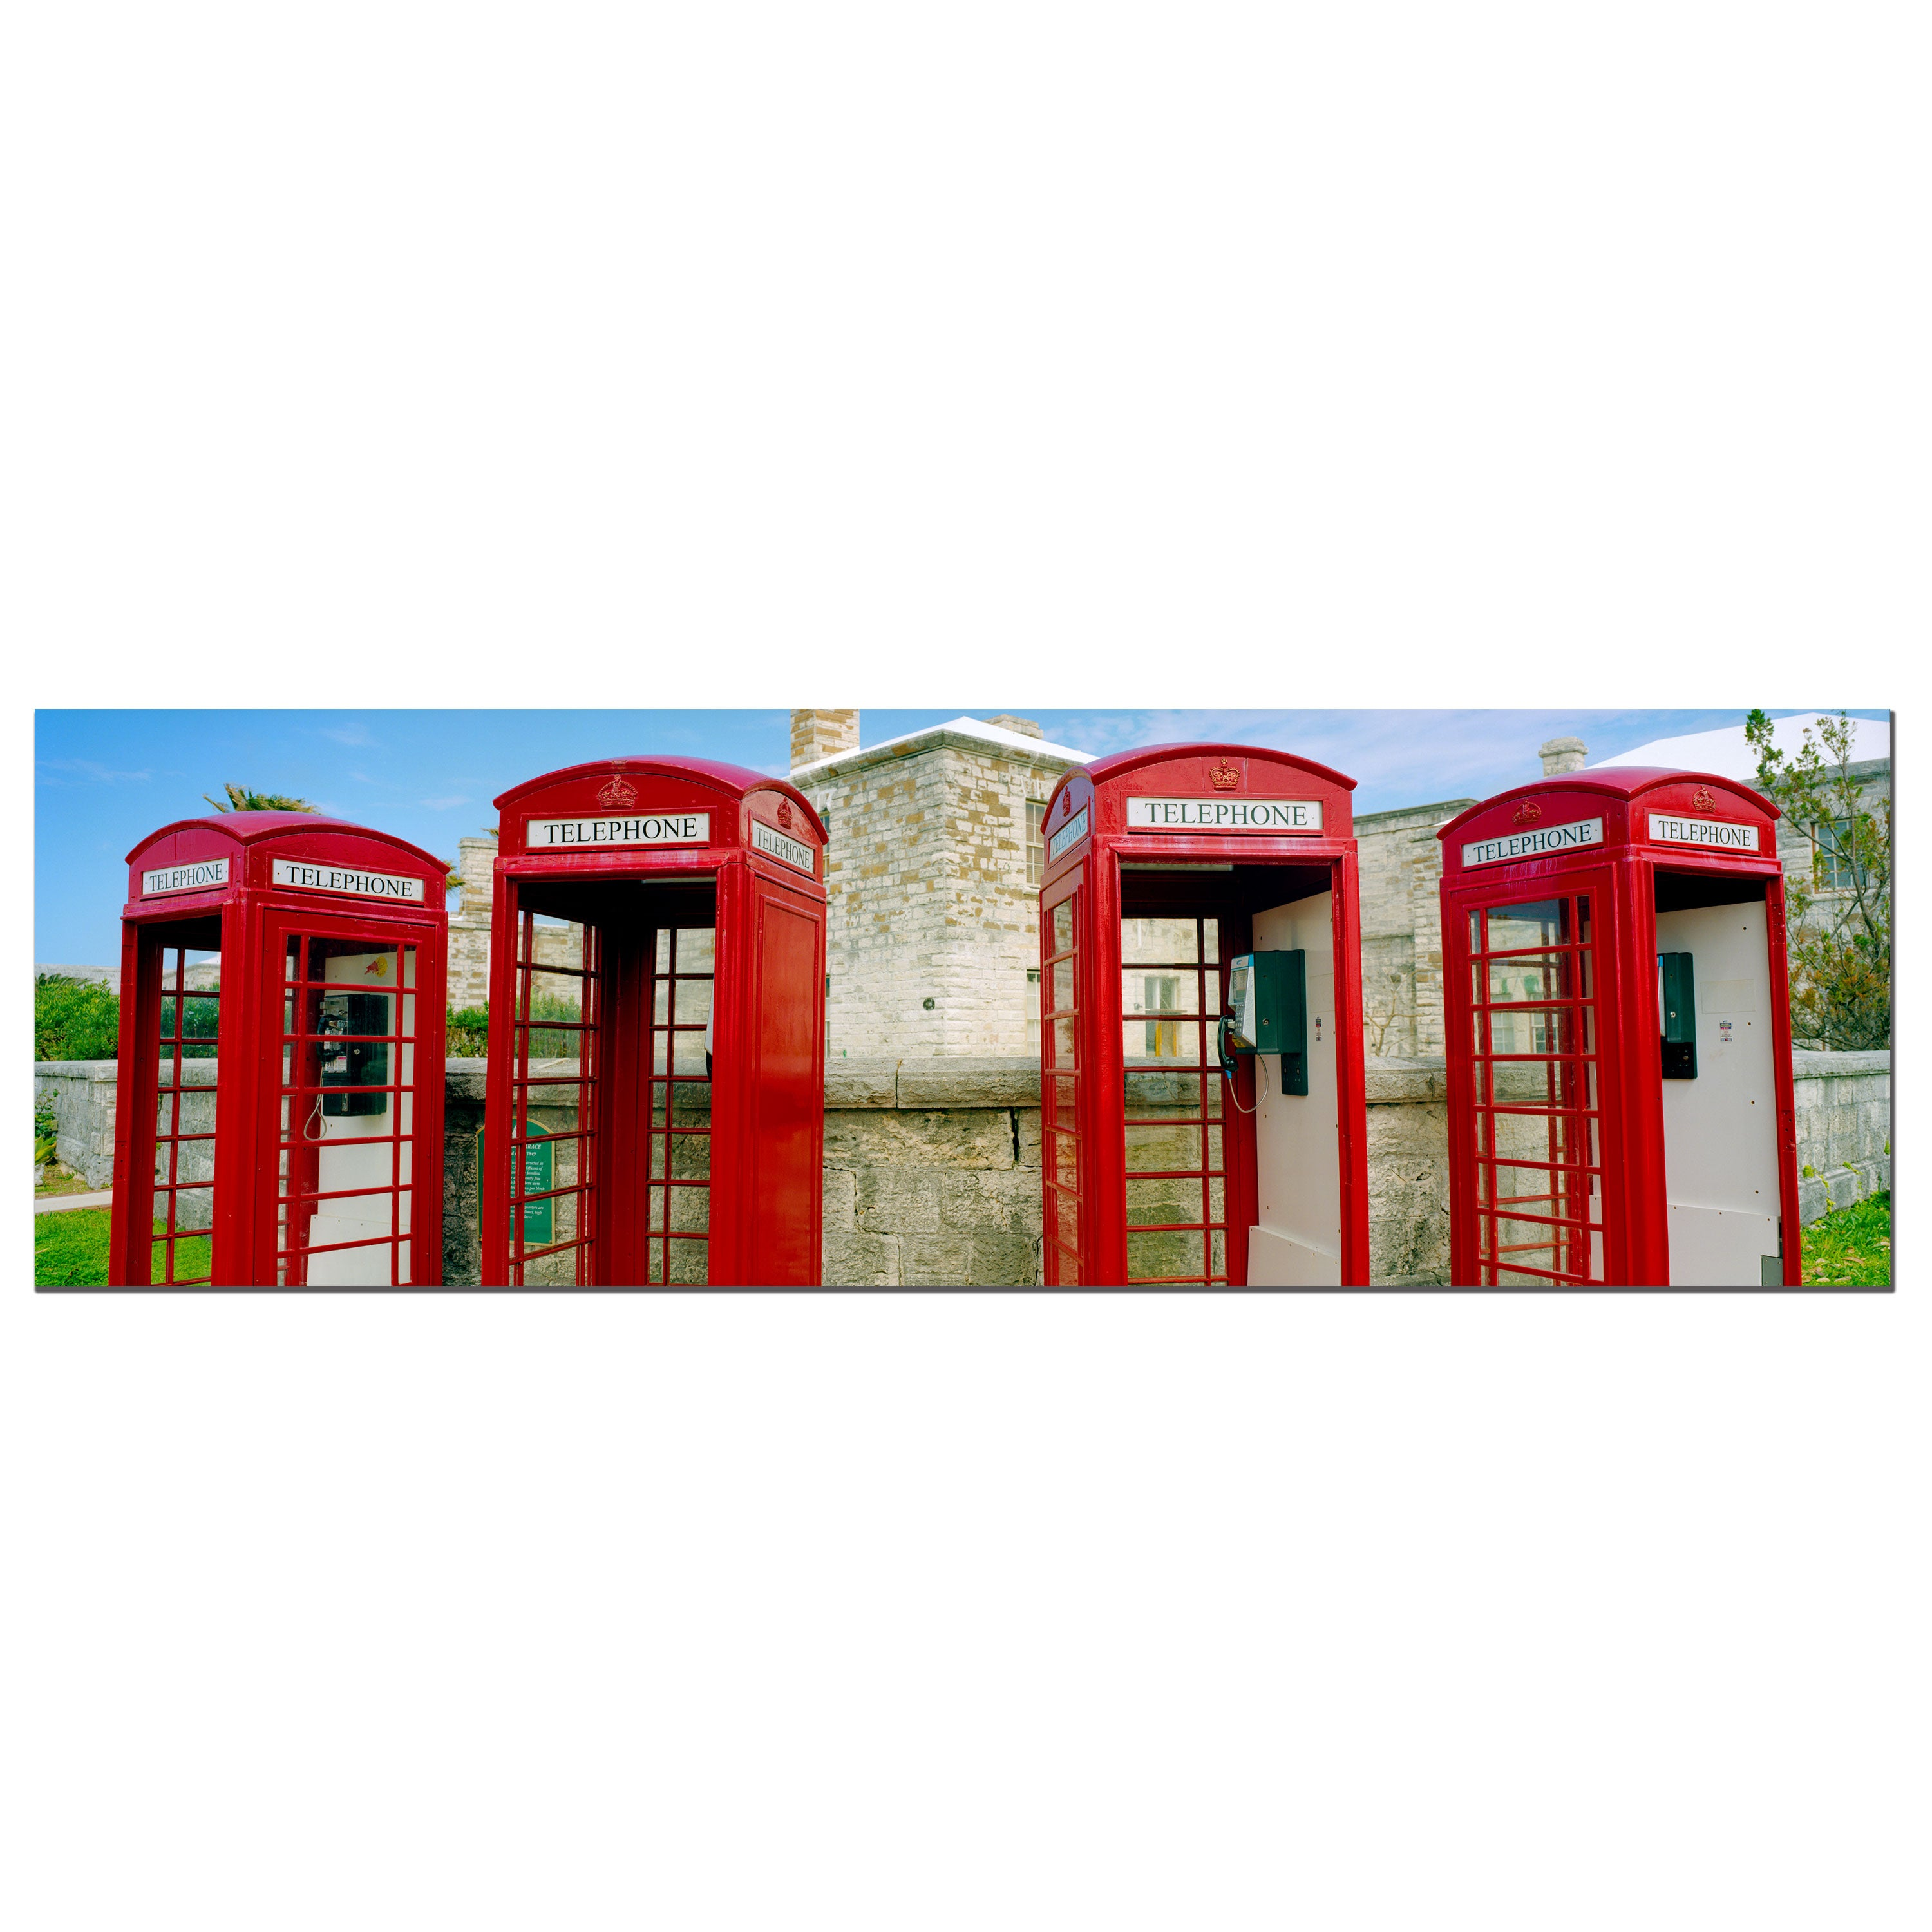 Preston 'Bermuda Telephone' Canvas Art